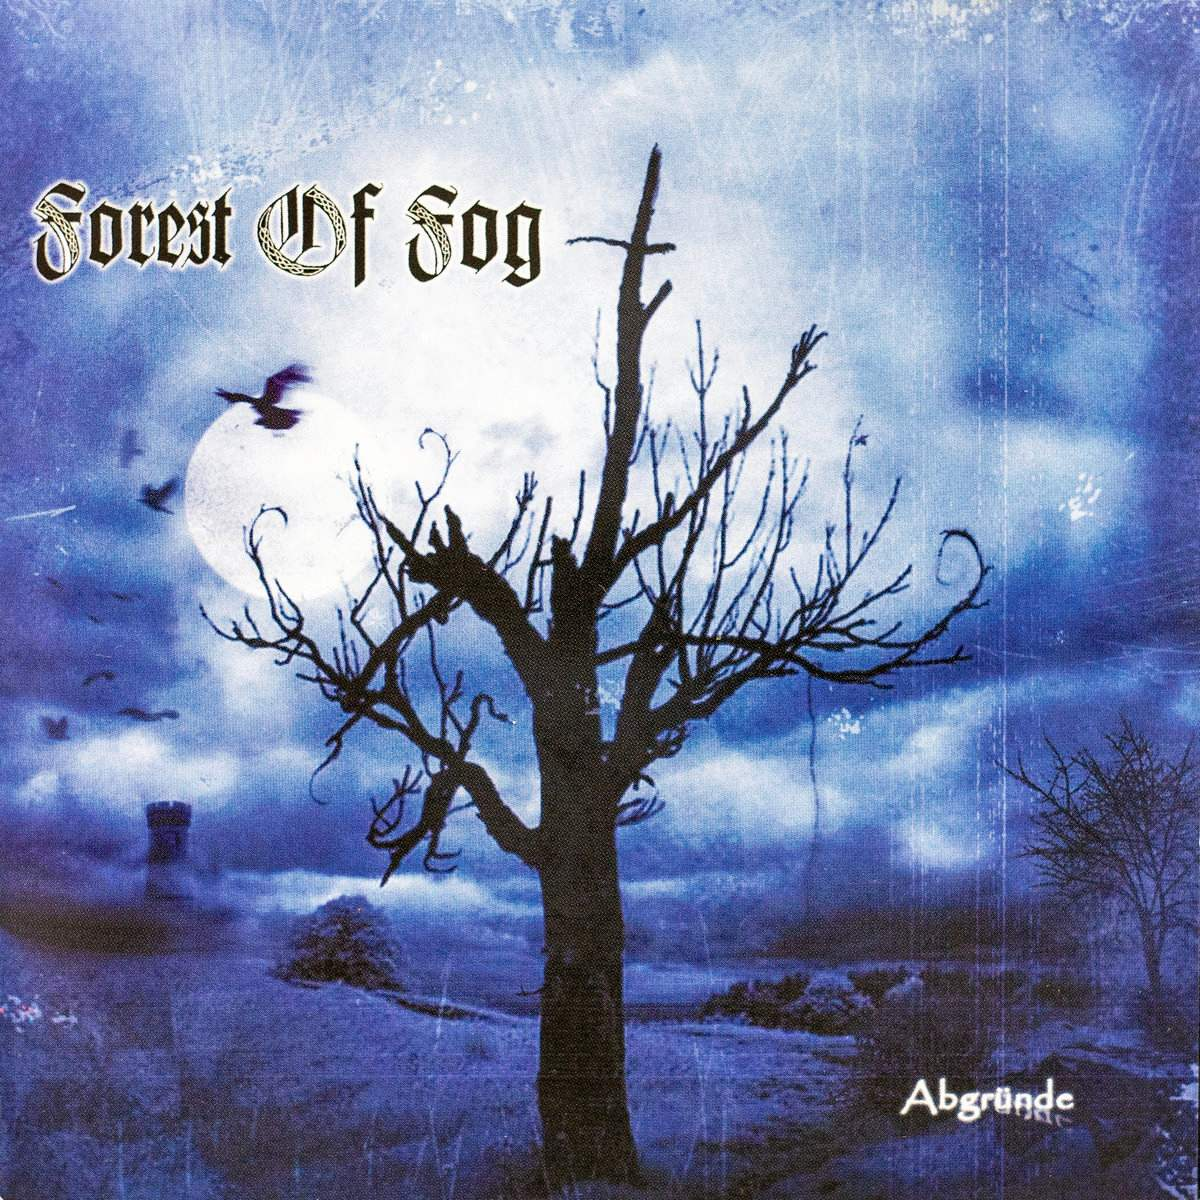 Forest of Fog - Abgründe